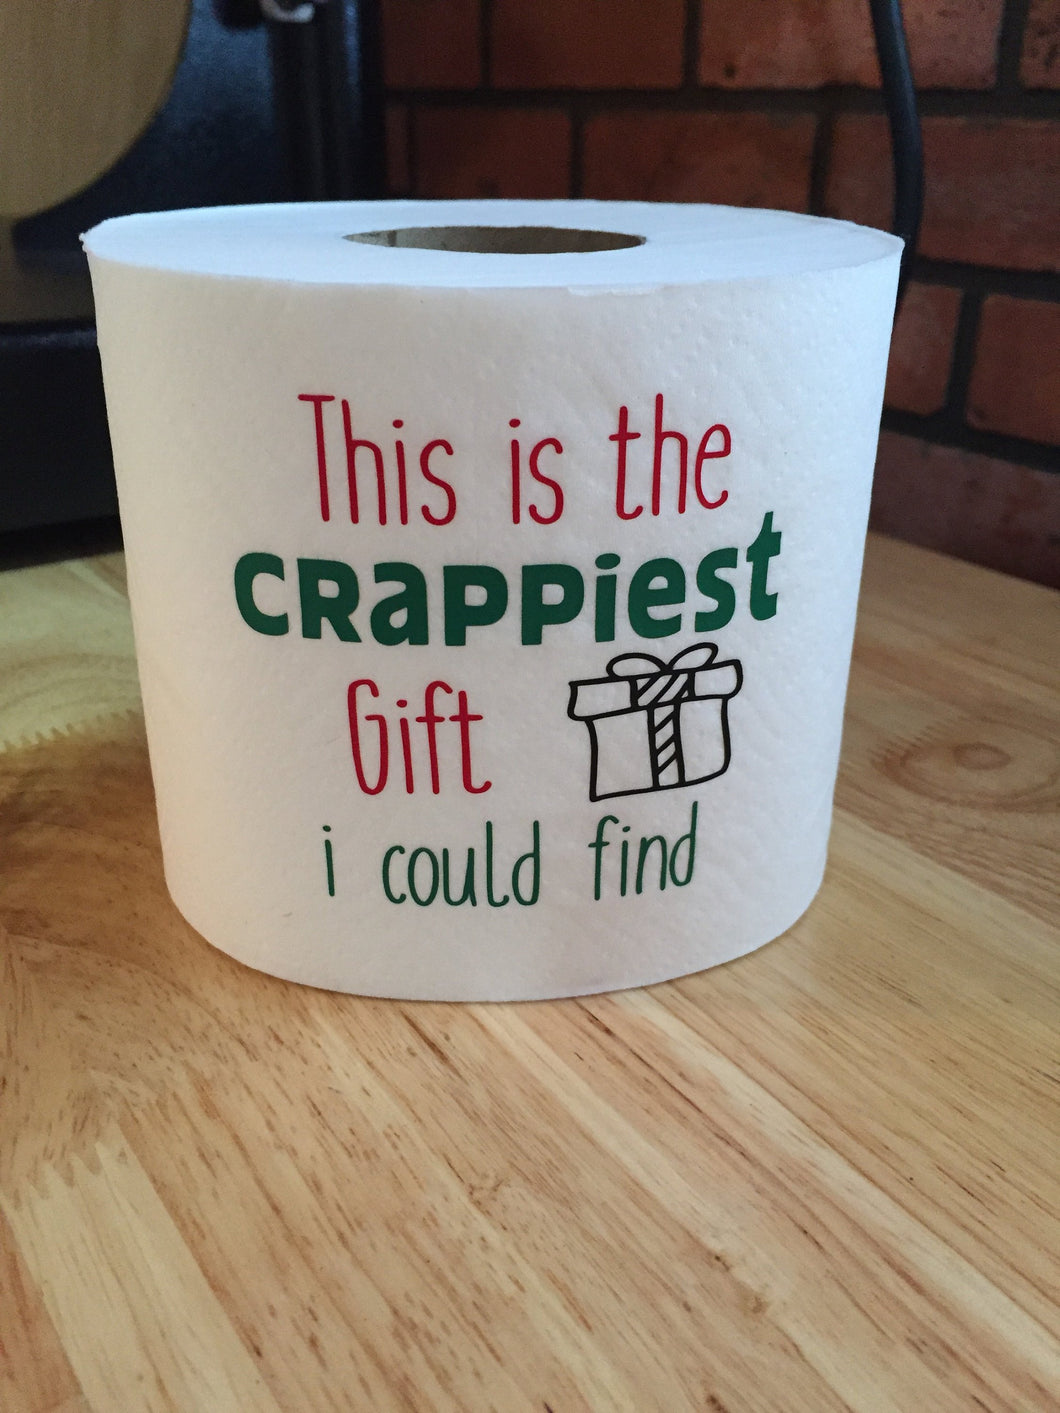 Funny Christmas Gift, Christmas Gift Funny, Gift Funny Christmas, Crappiest Funny Christmas Gift, Crappiest Gift Ever